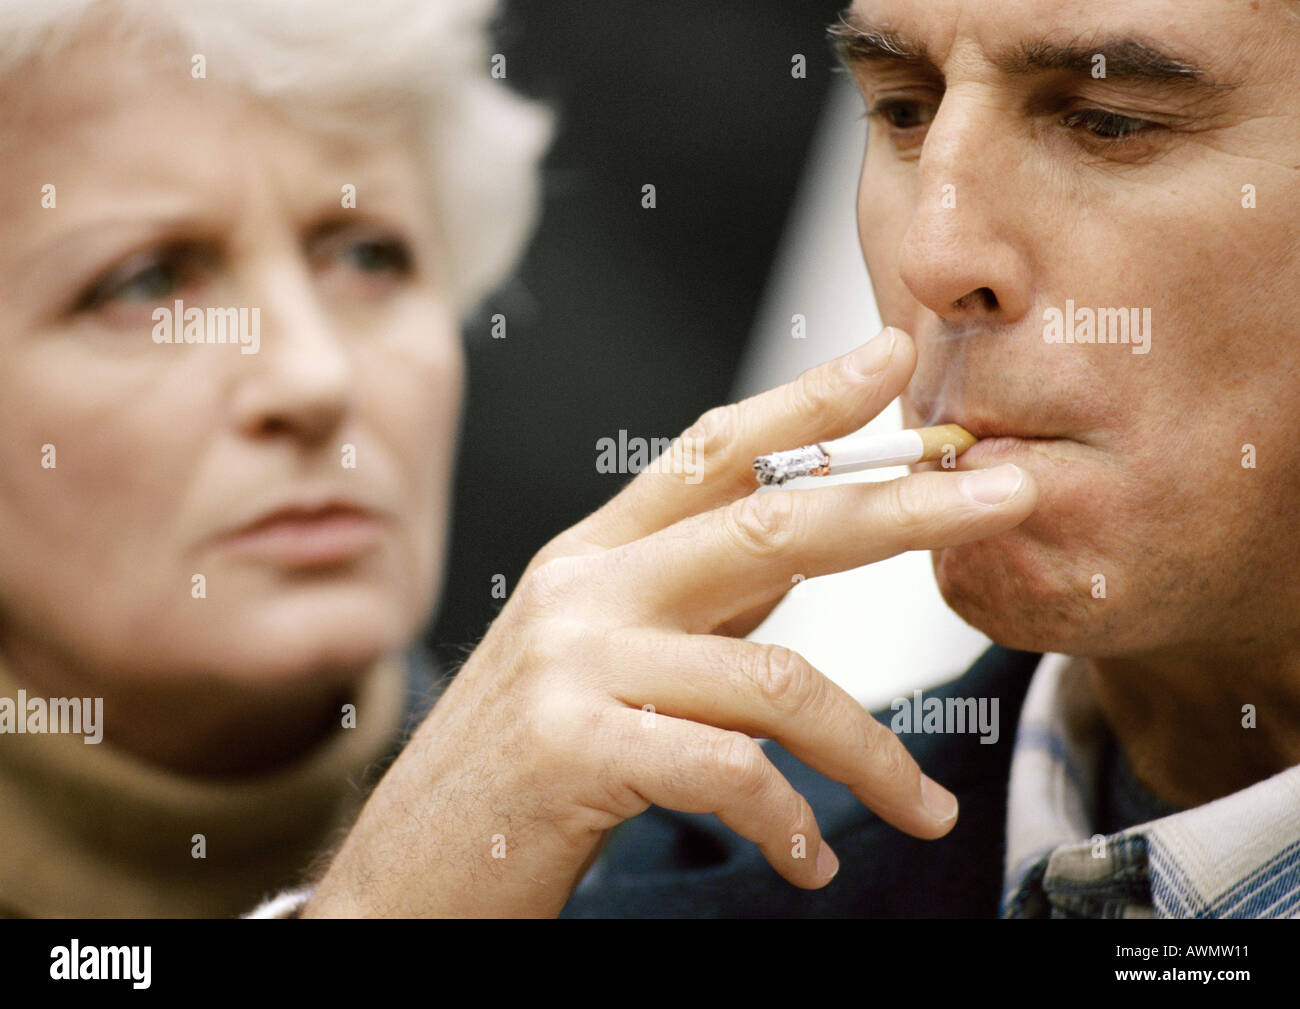 Man smoking, woman blurred in background, close-up Stock Photo